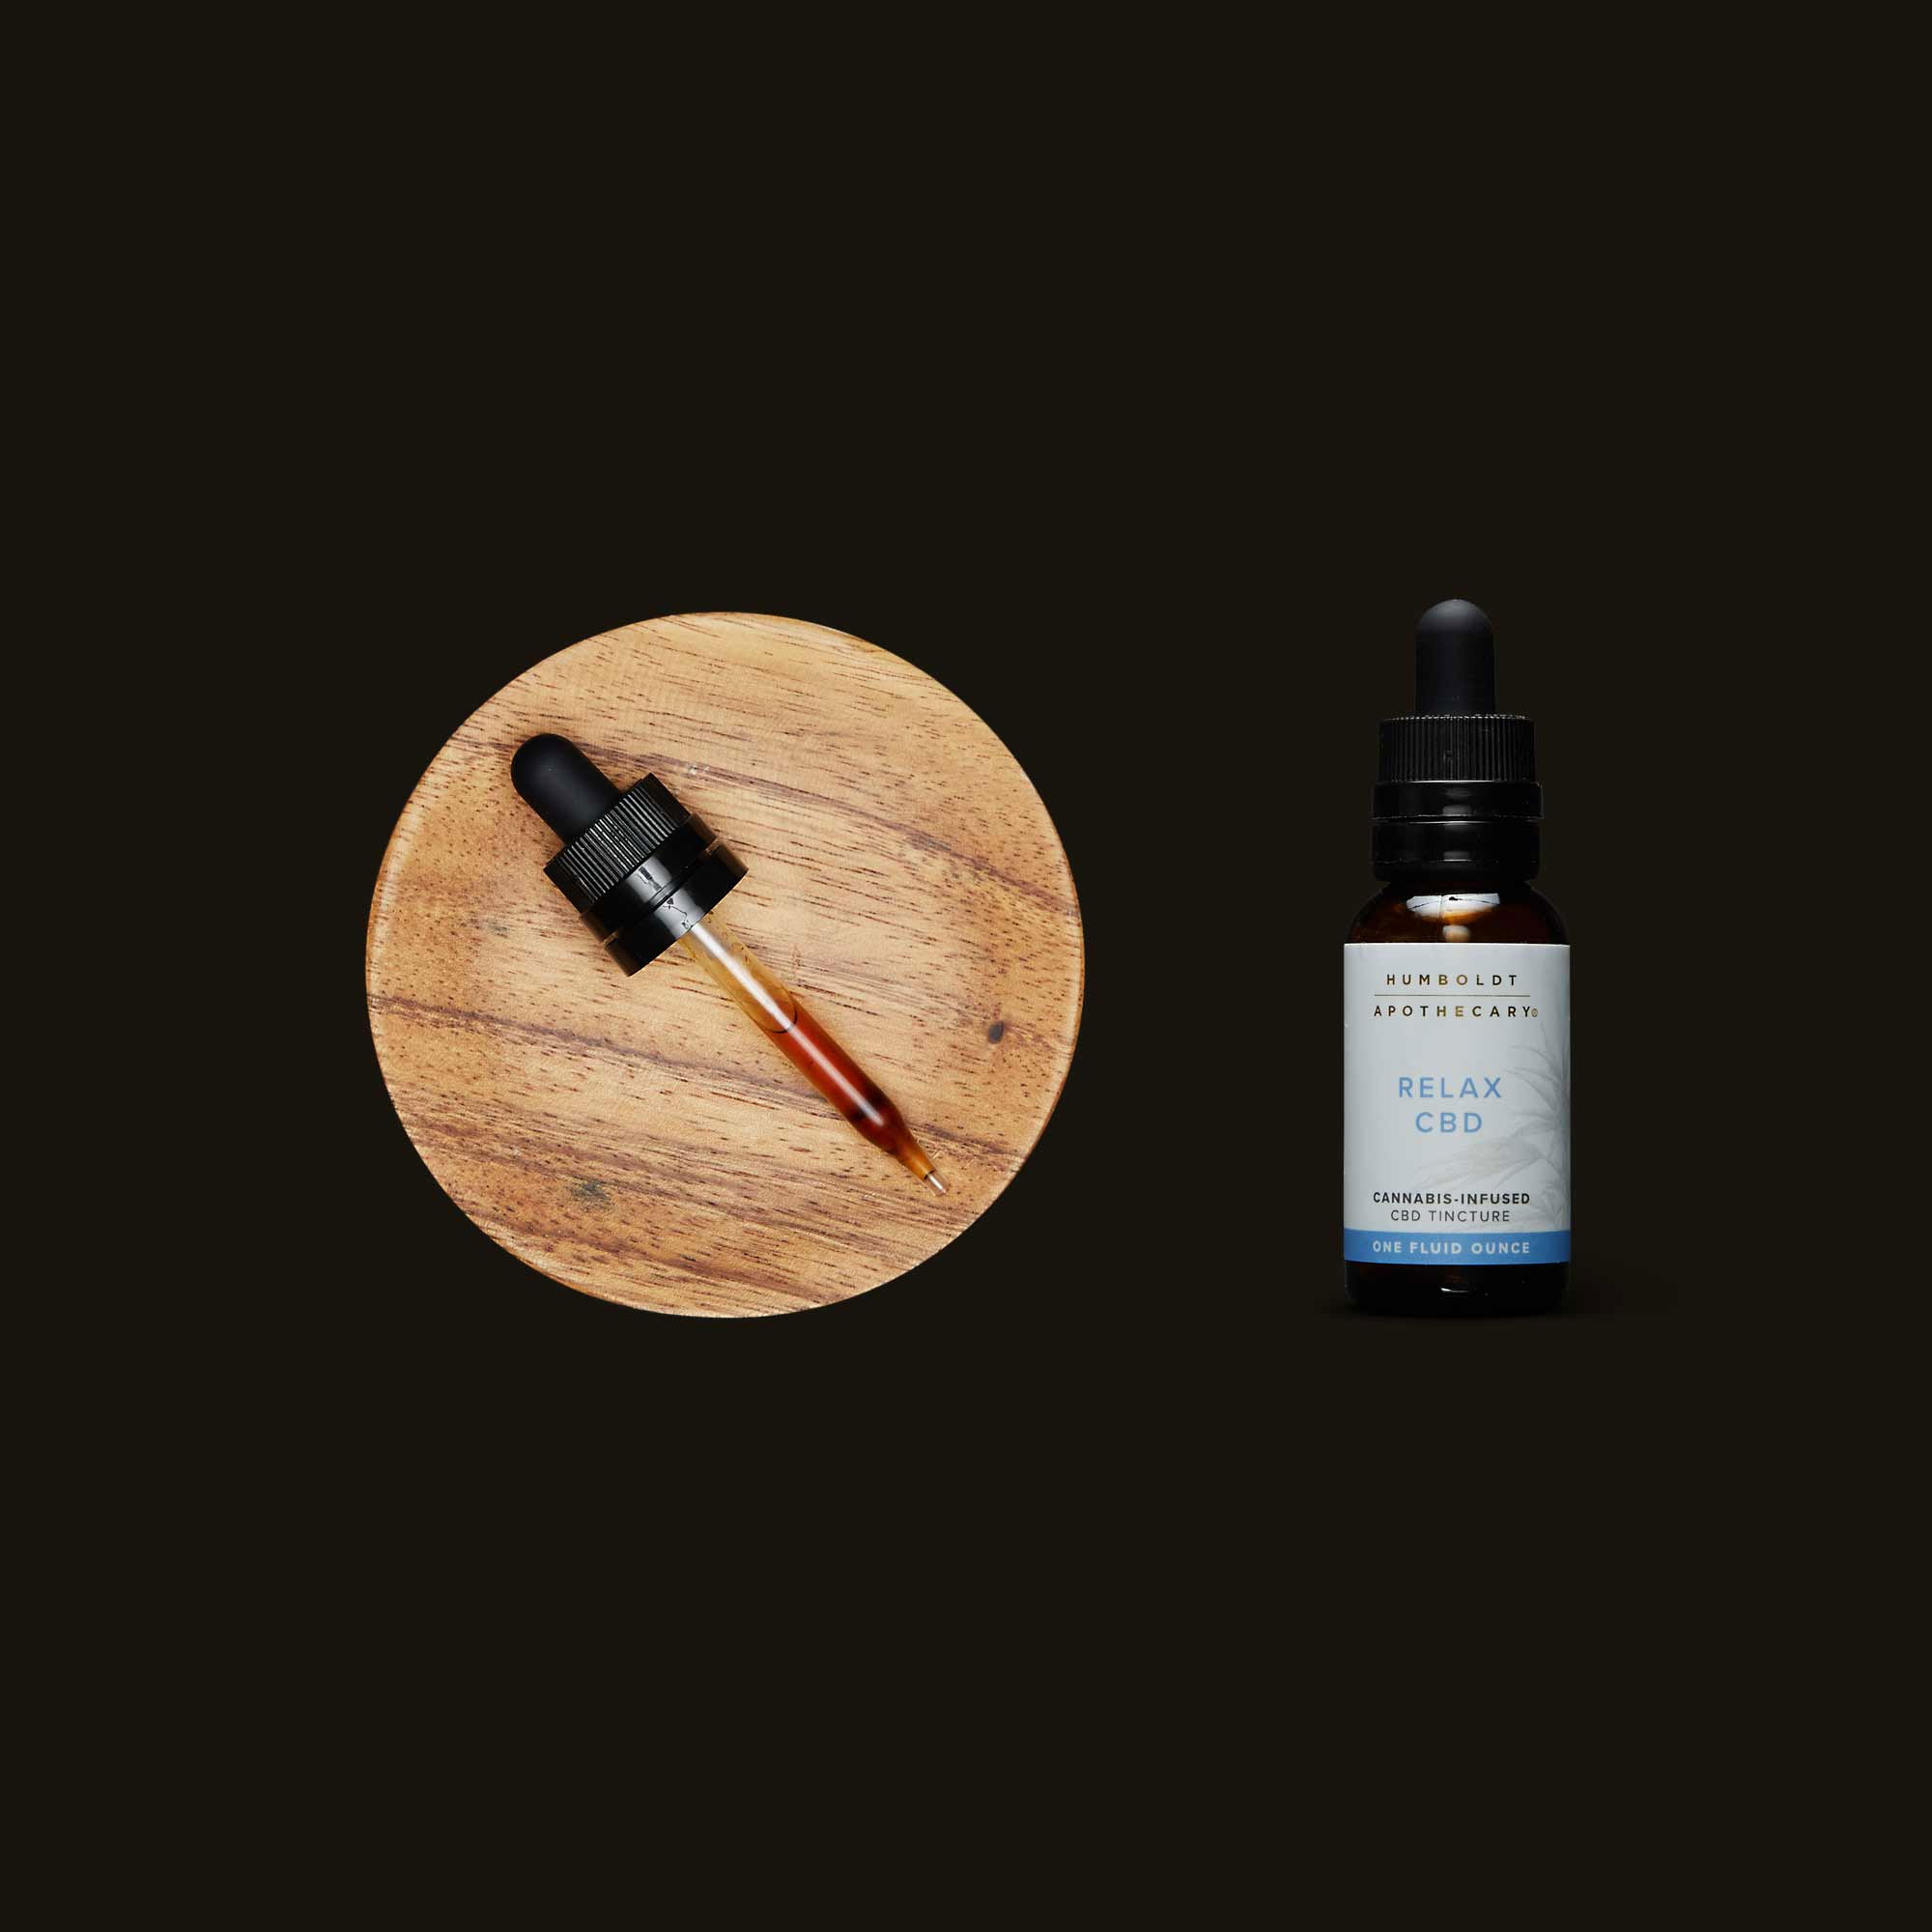 Relax CBD by Humboldt Apothecary